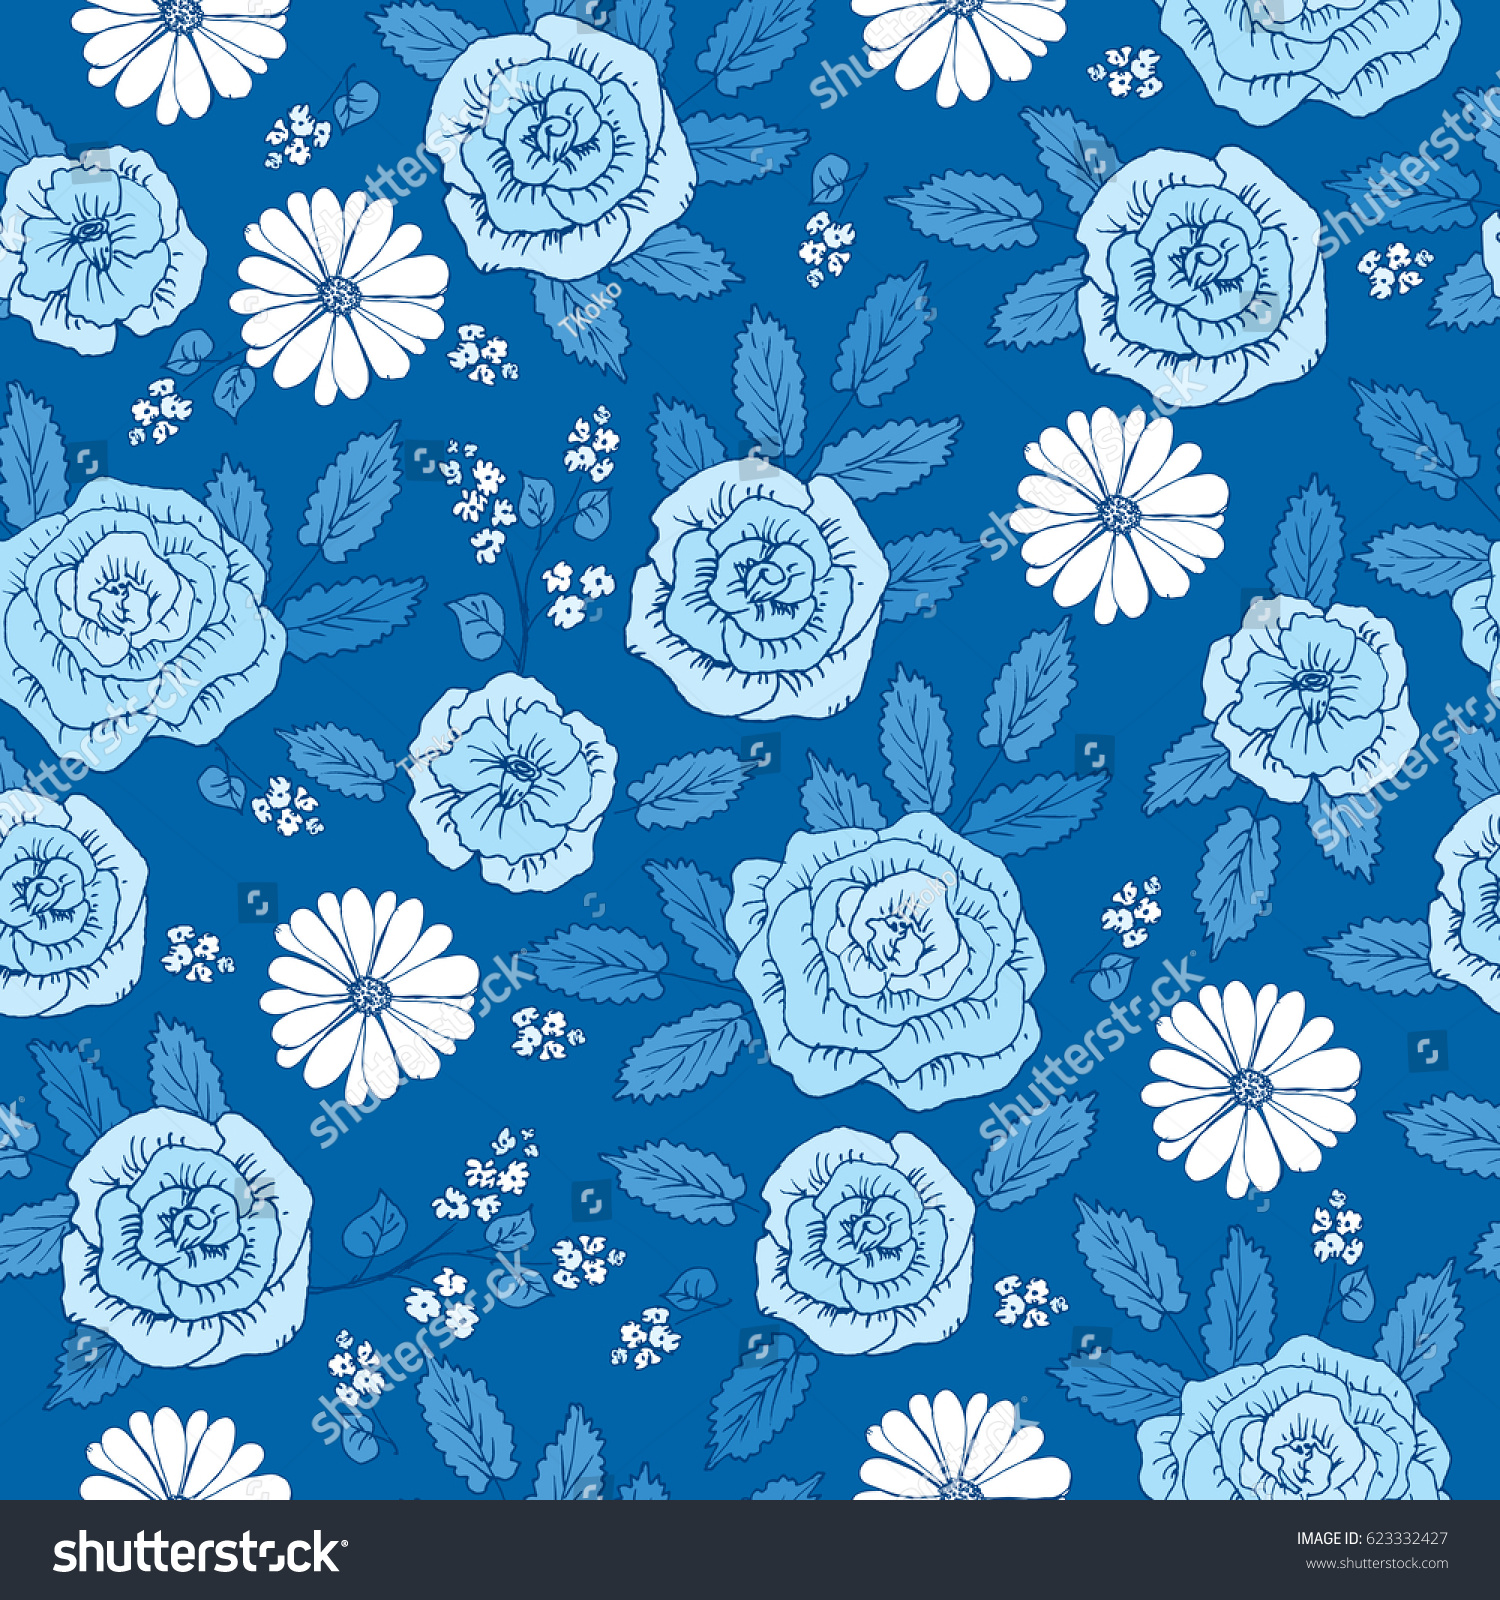 Floral Pattern With Hand Drawn Cute Flowers For Textile Wallpapers Gift Wrap And Scrapbook